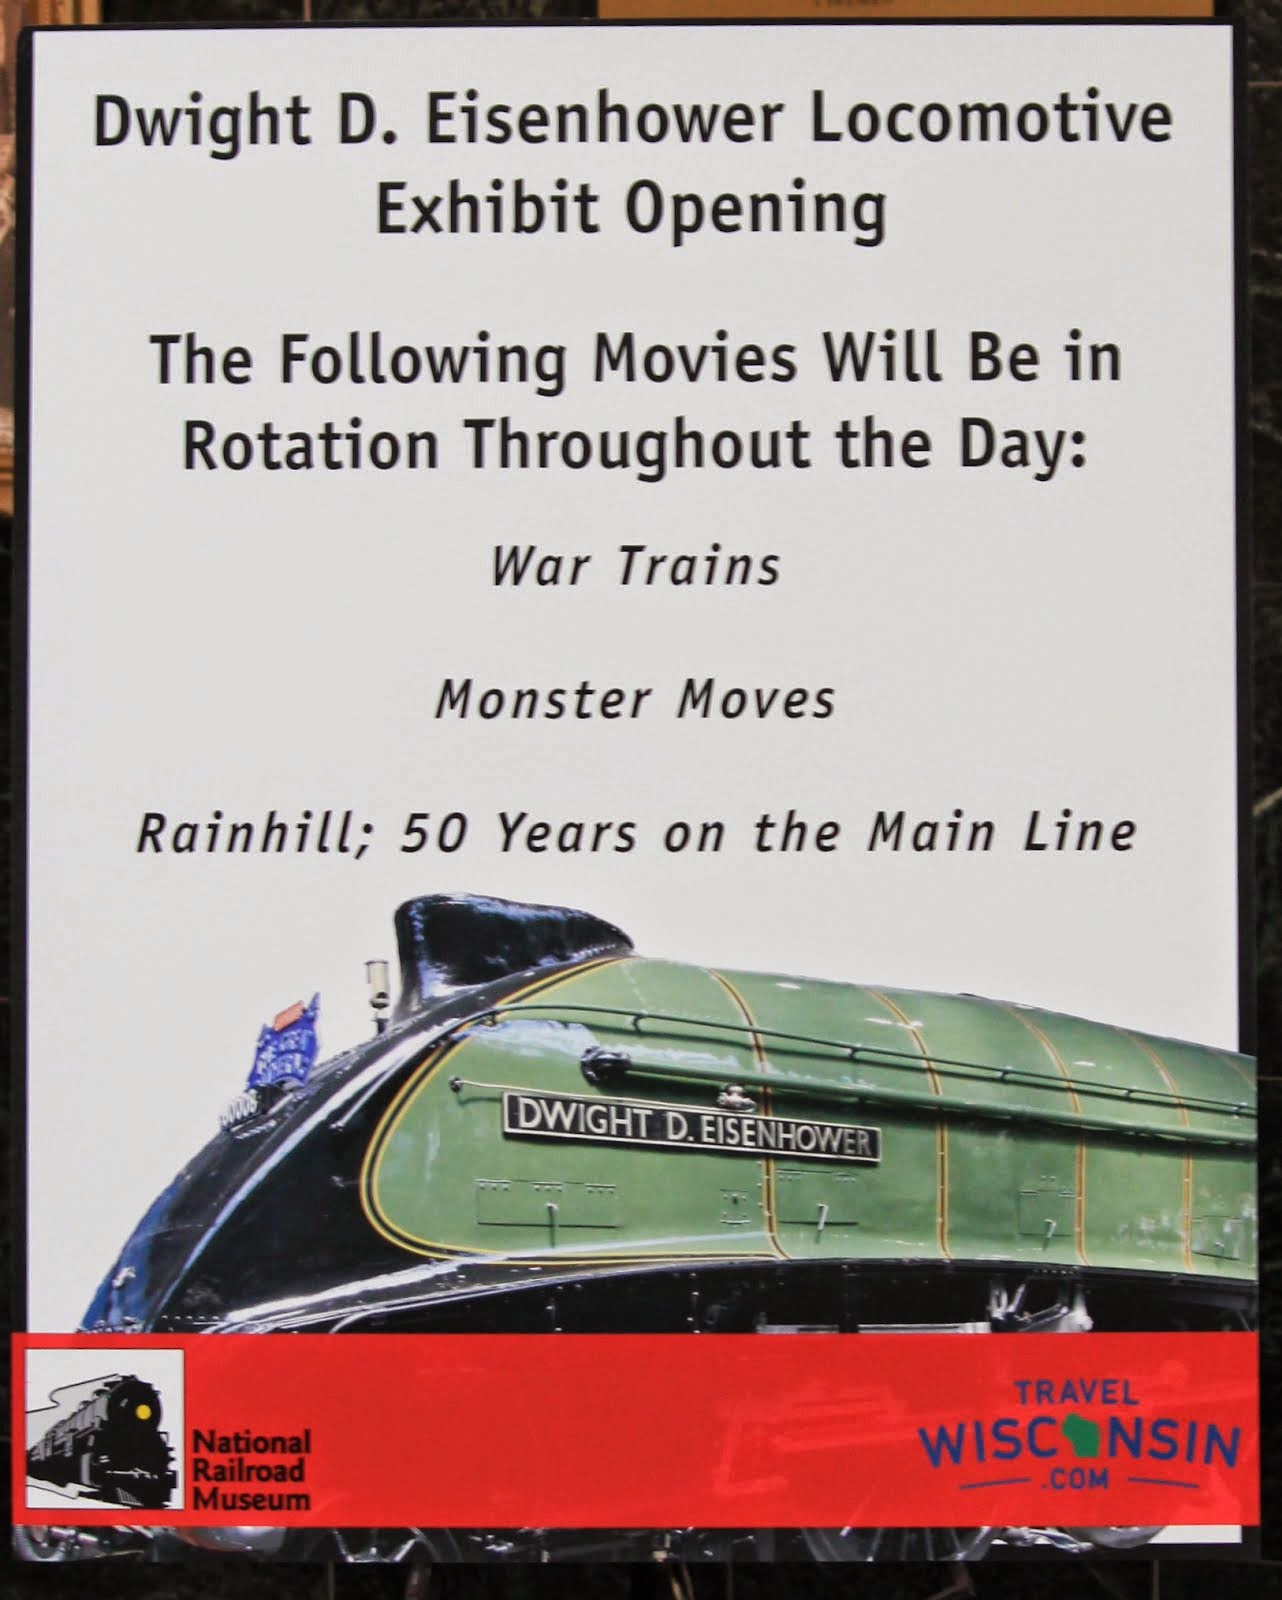 Dwight D. Eisenhower Locomotive Exhibit Opening